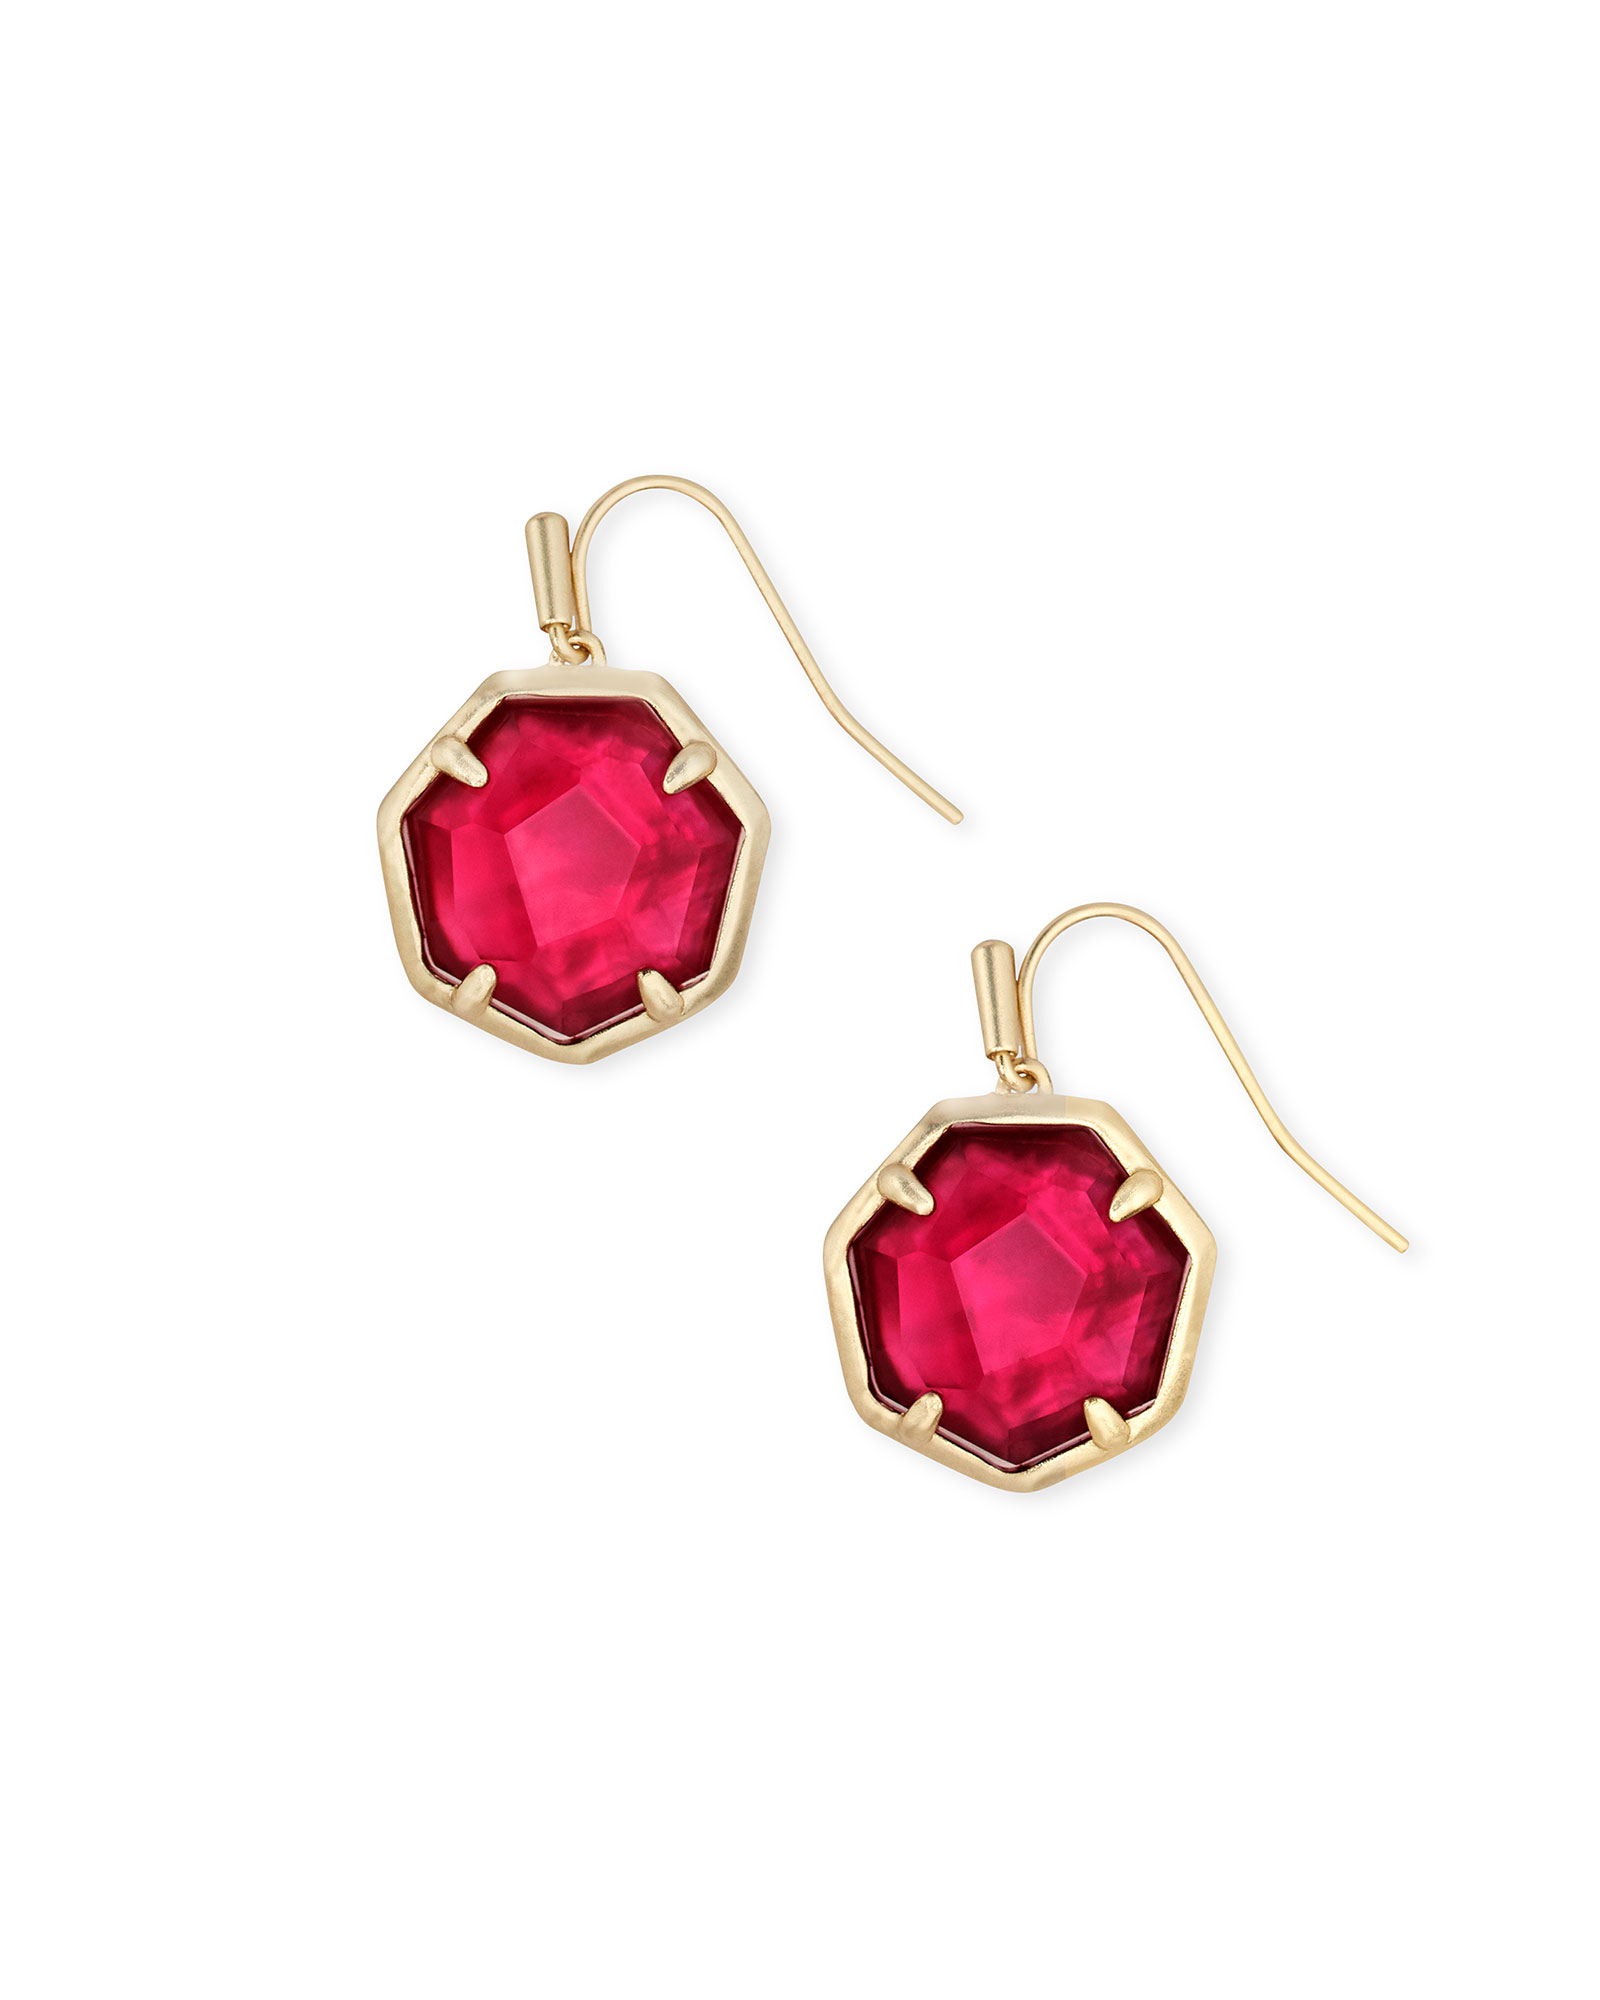 Cynthia Gold Drop Earrings in Berry Illusion